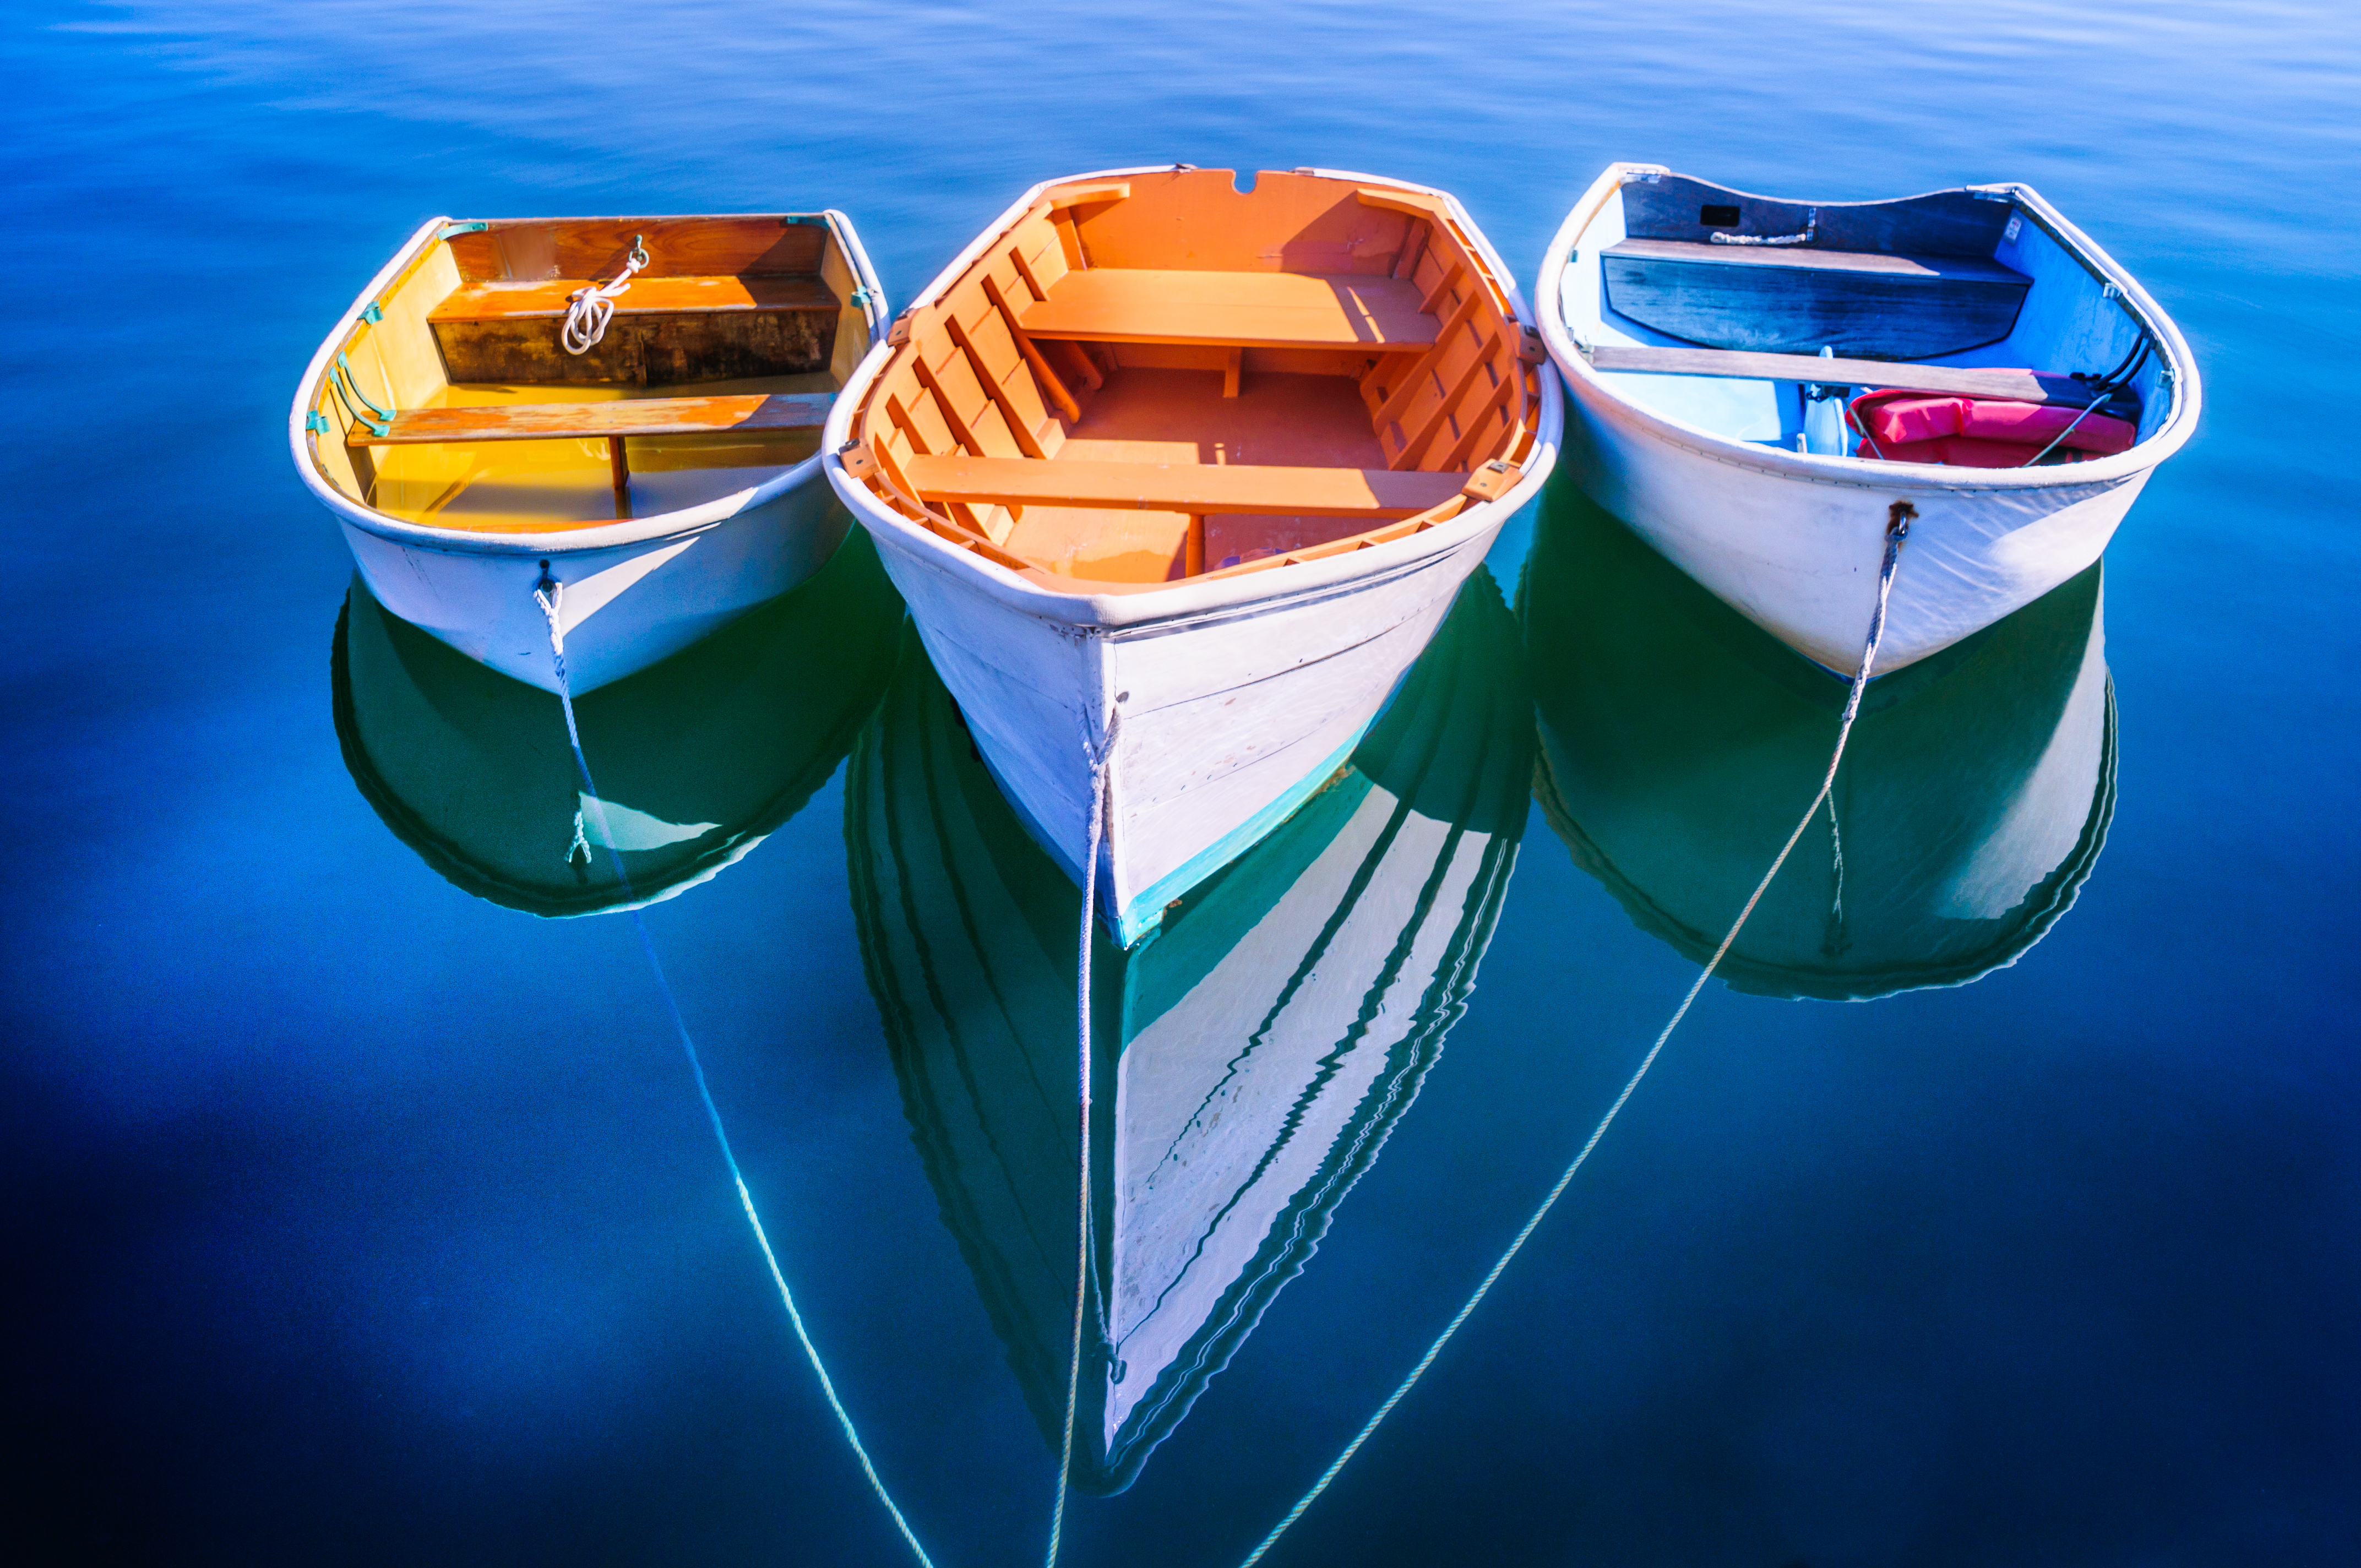 three-colorful-rowboats.jpg?mtime=20200124121733#asset:107776